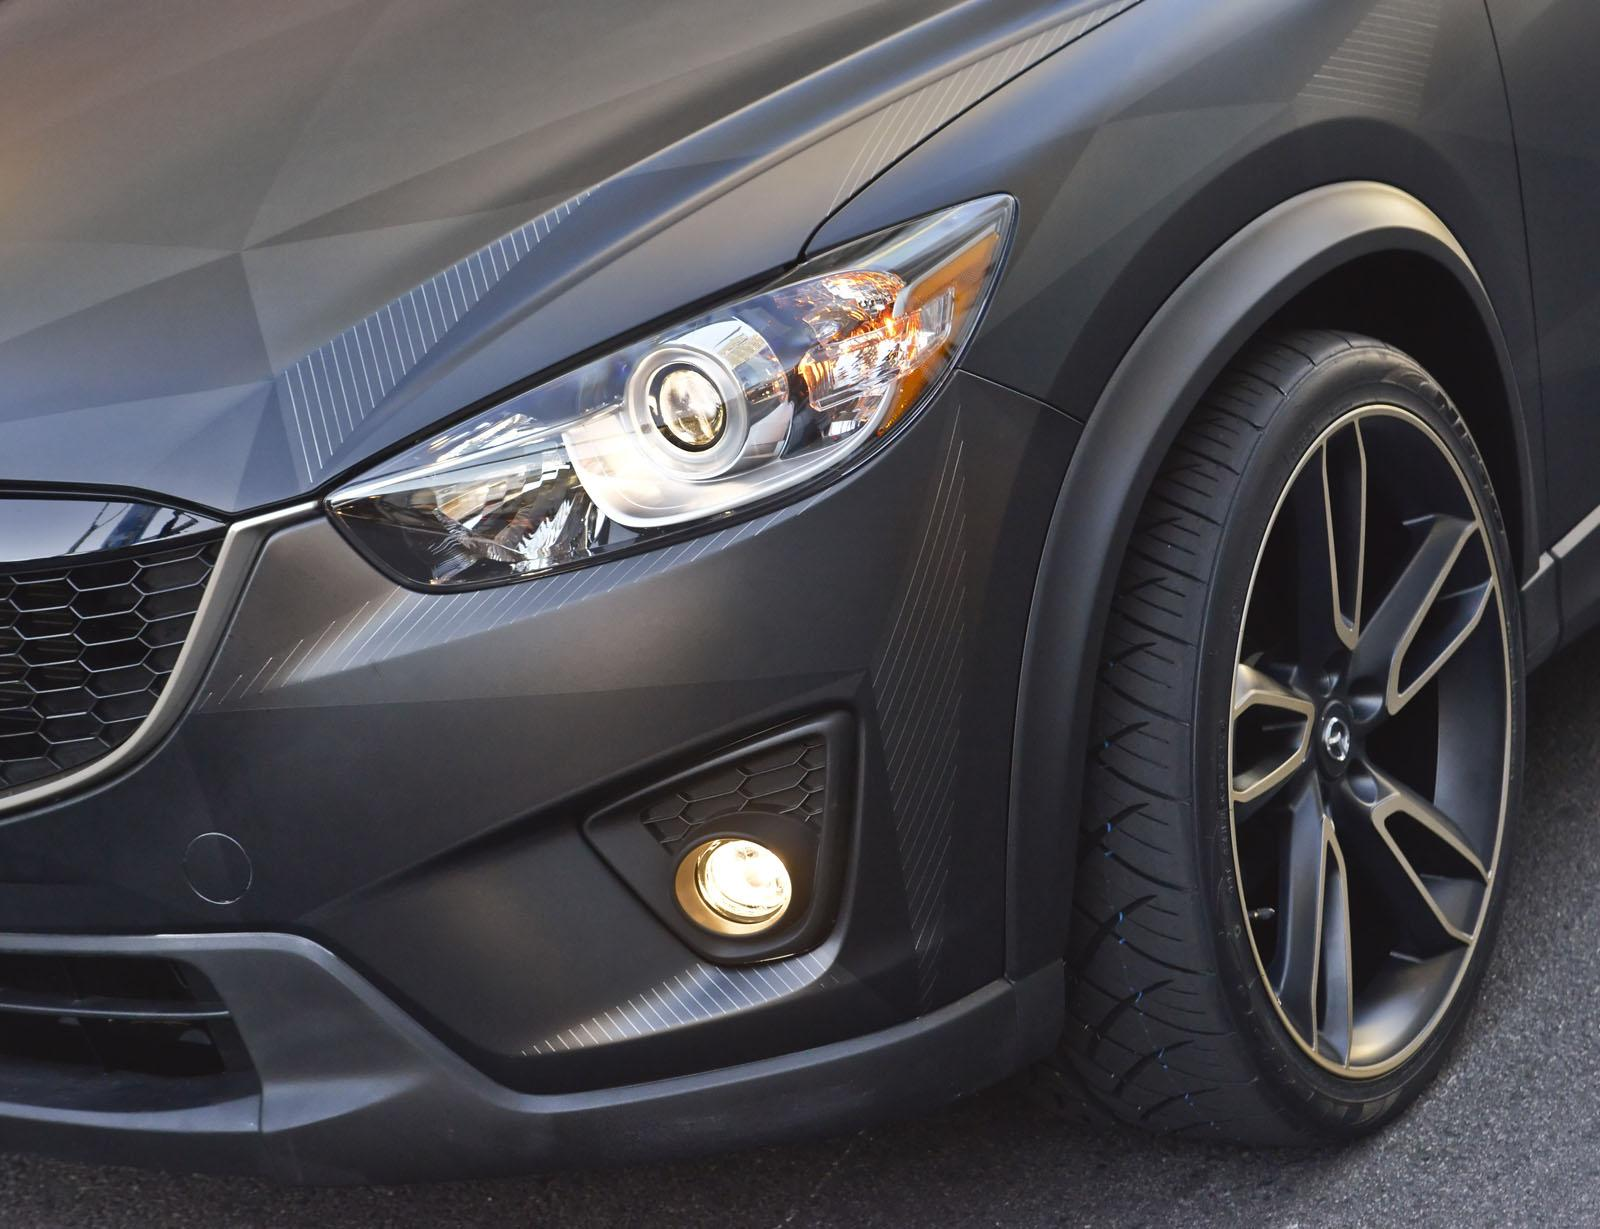 62 best mazda cx 5 images on pinterest mazda cx5 future car and dream cars